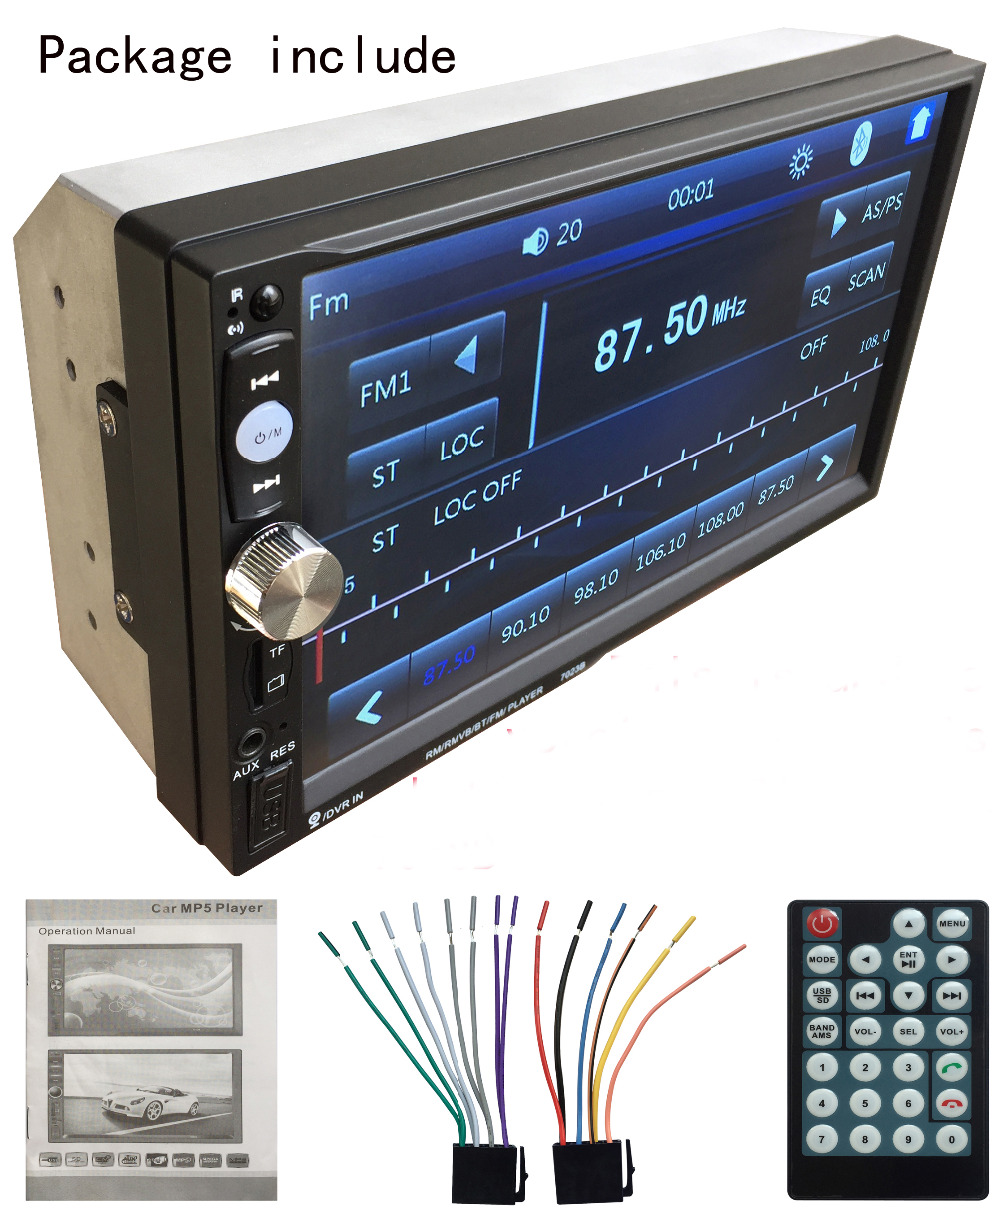 2 DIN 7 Inch  Car Radio Audio Stereo Player with Full-Touch Screen,1024*600 HD Resolution,Bluetooth